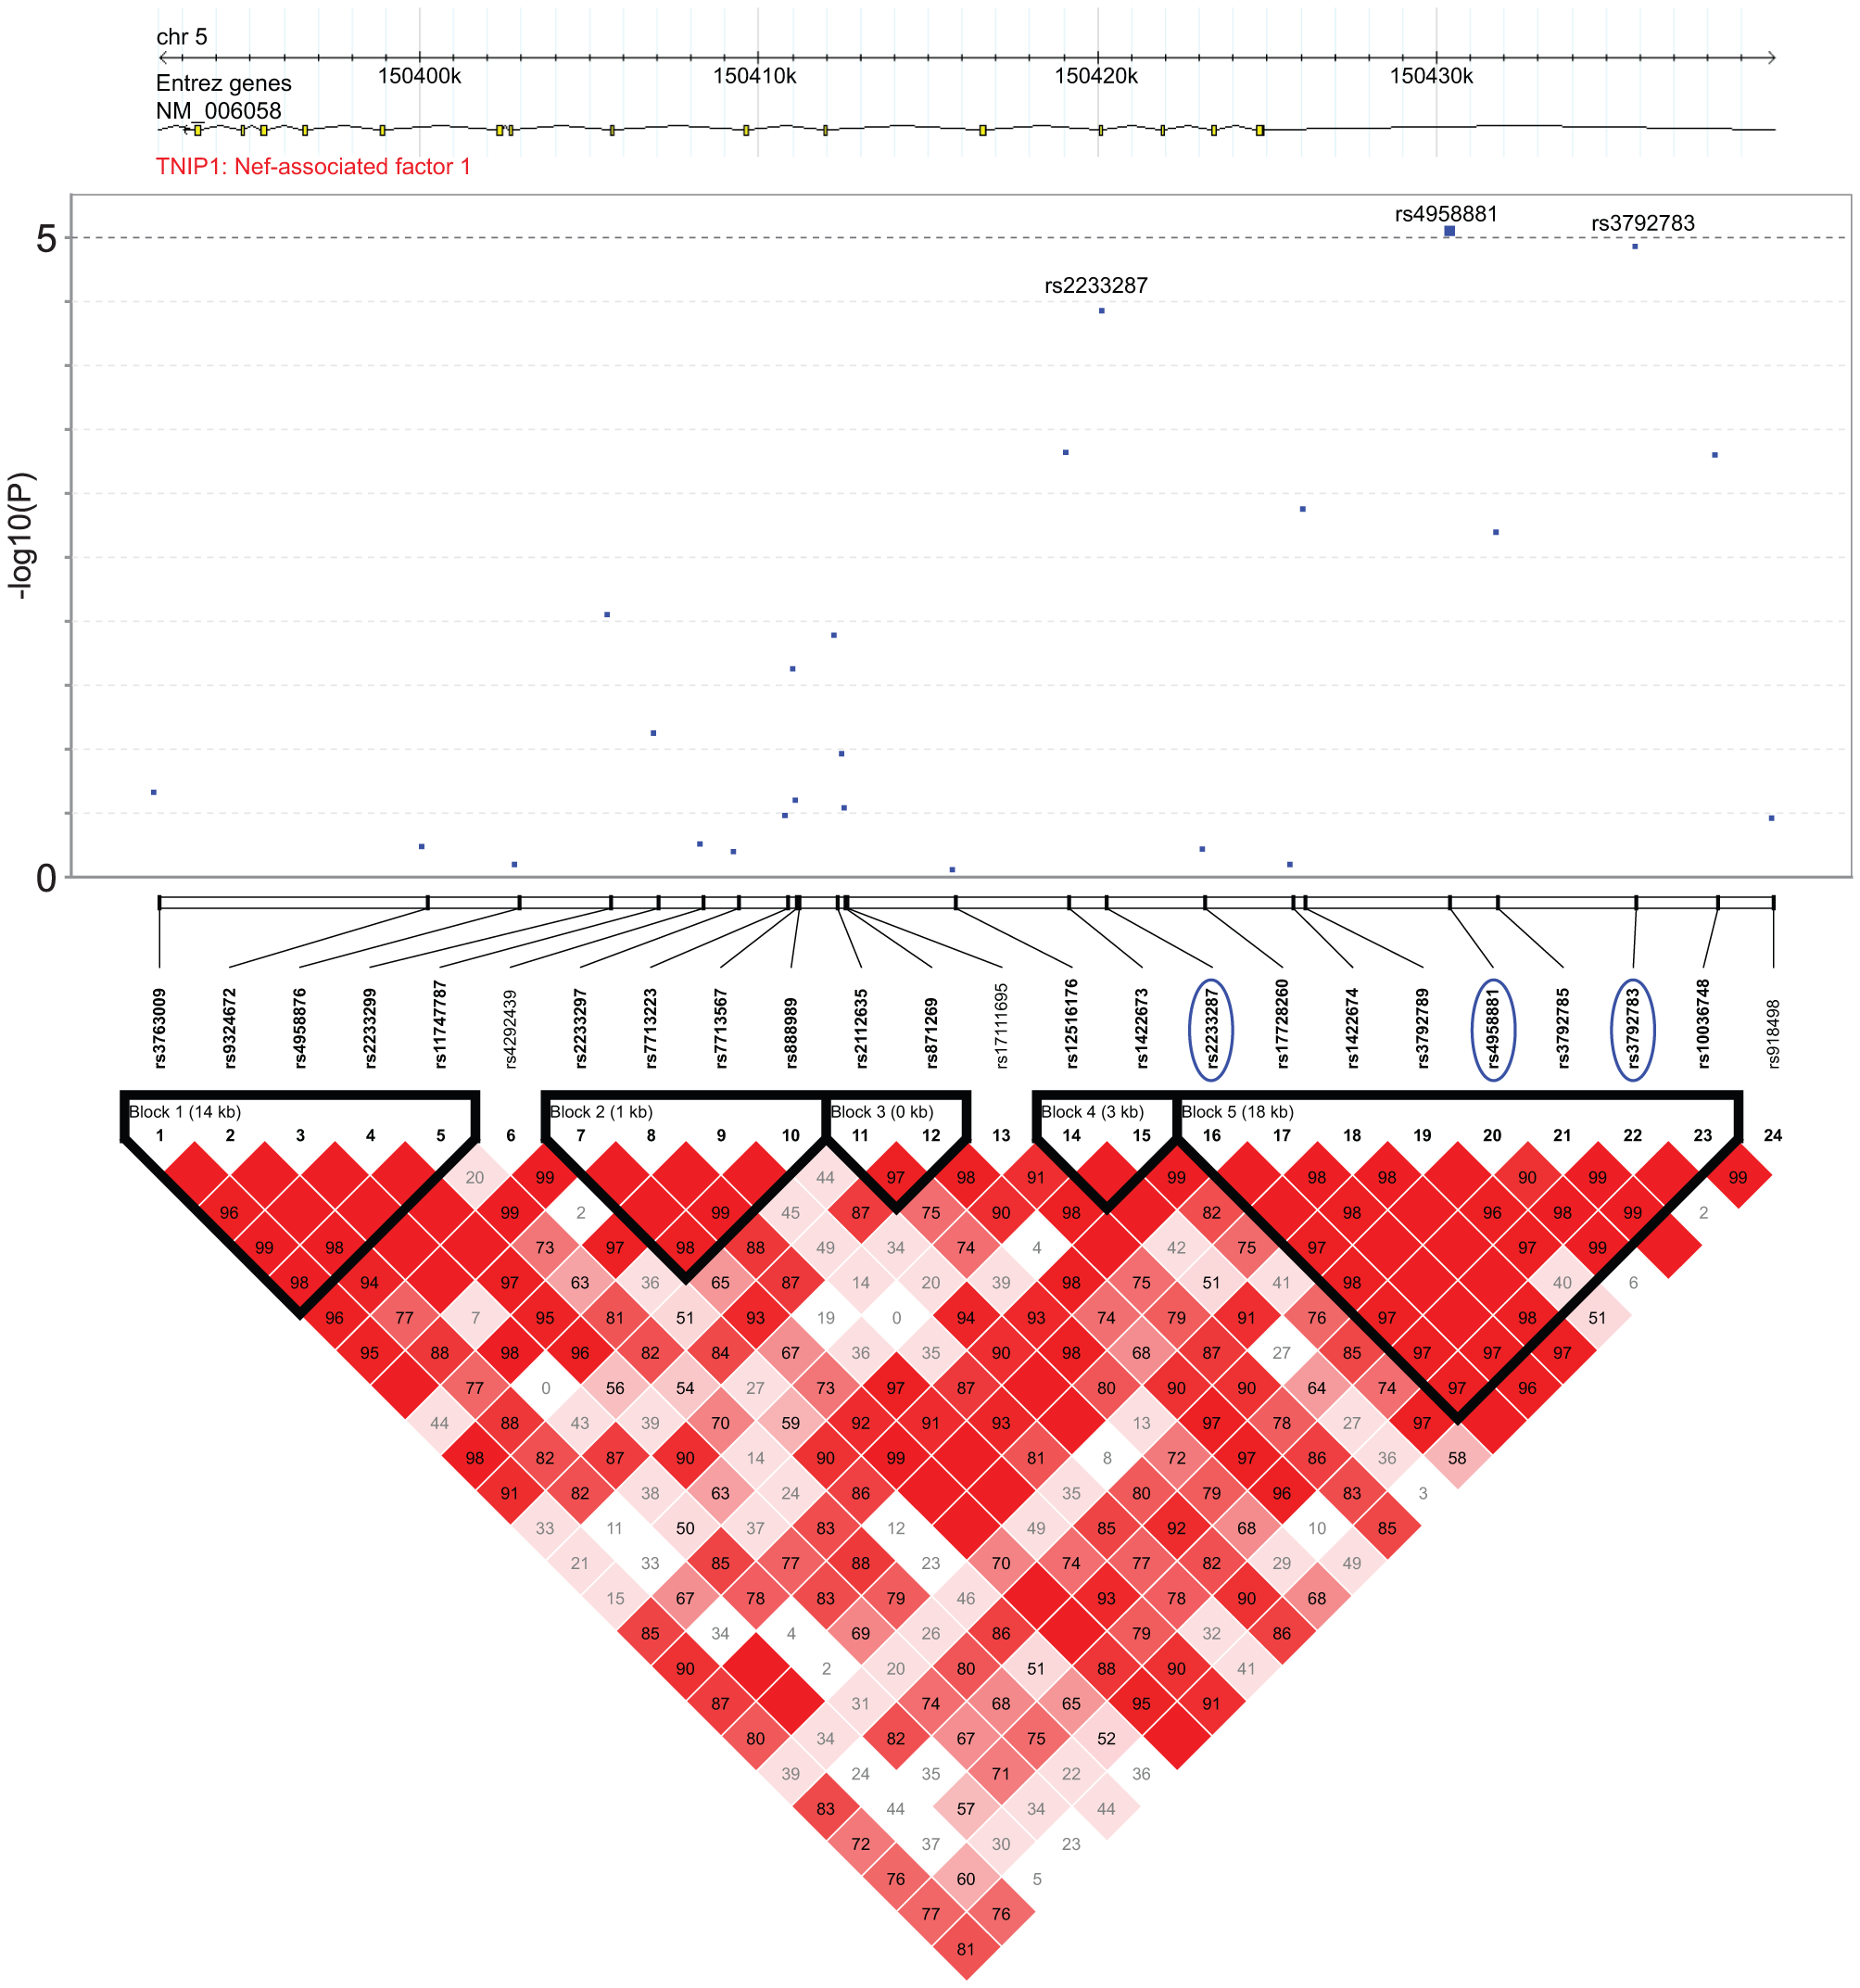 Association and linkage disequilibrium patterns at the TNIP1 gene.